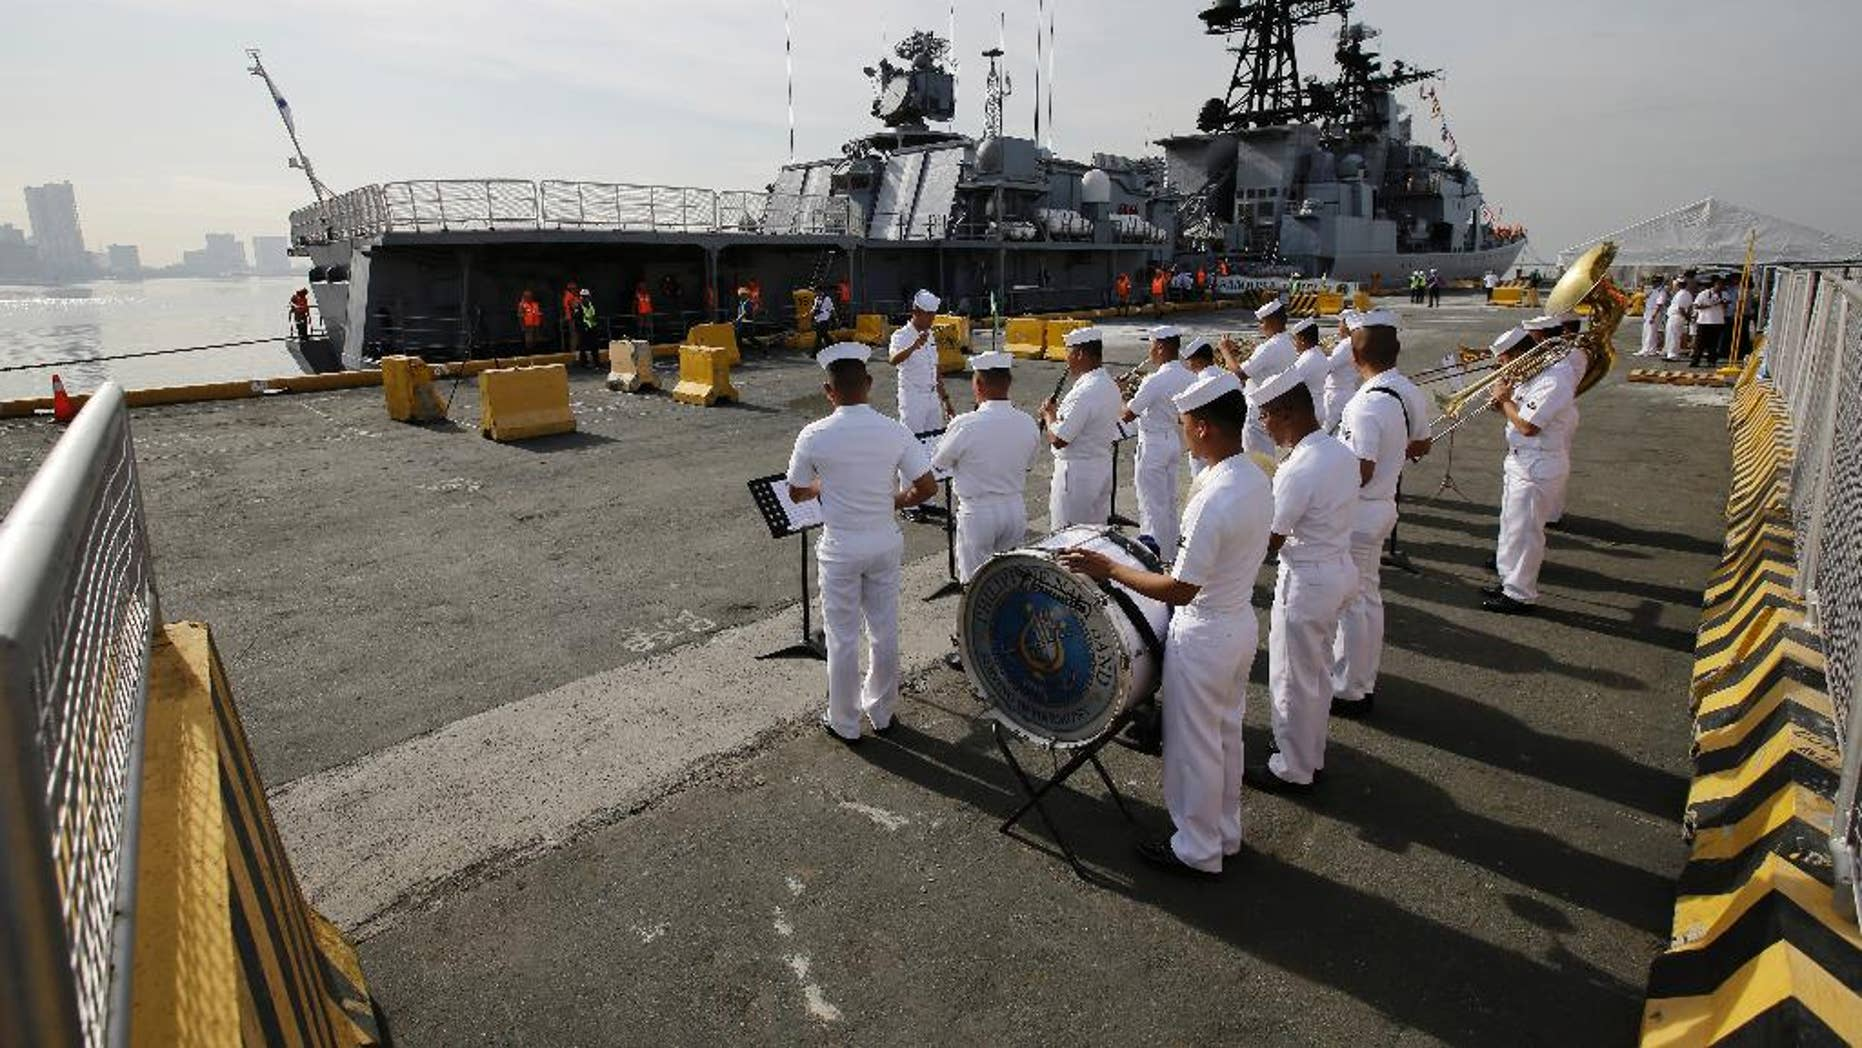 A Philippines Navy Band plays as the Russian Navy vessel Admiral Tributs, a large anti-submarine ship, docks at Manila's pier on Tuesday.